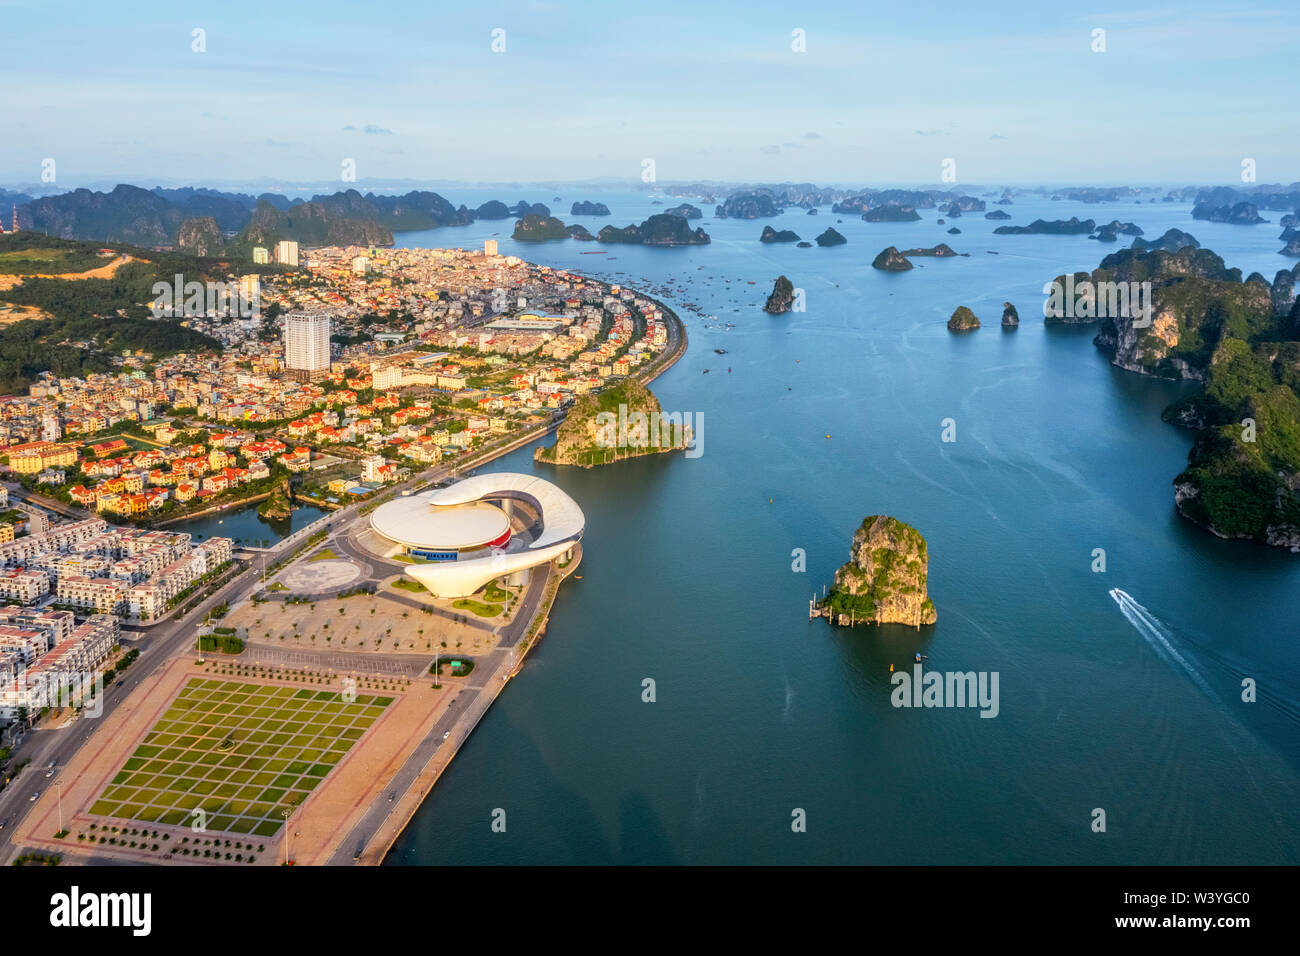 Quang Ninh Planning, Fair and Exhibition Area or dolphins house. Halong City. Near Halong Bay, UNESCO World Heritage Site. Popular landmark of VIetnam Stock Photo